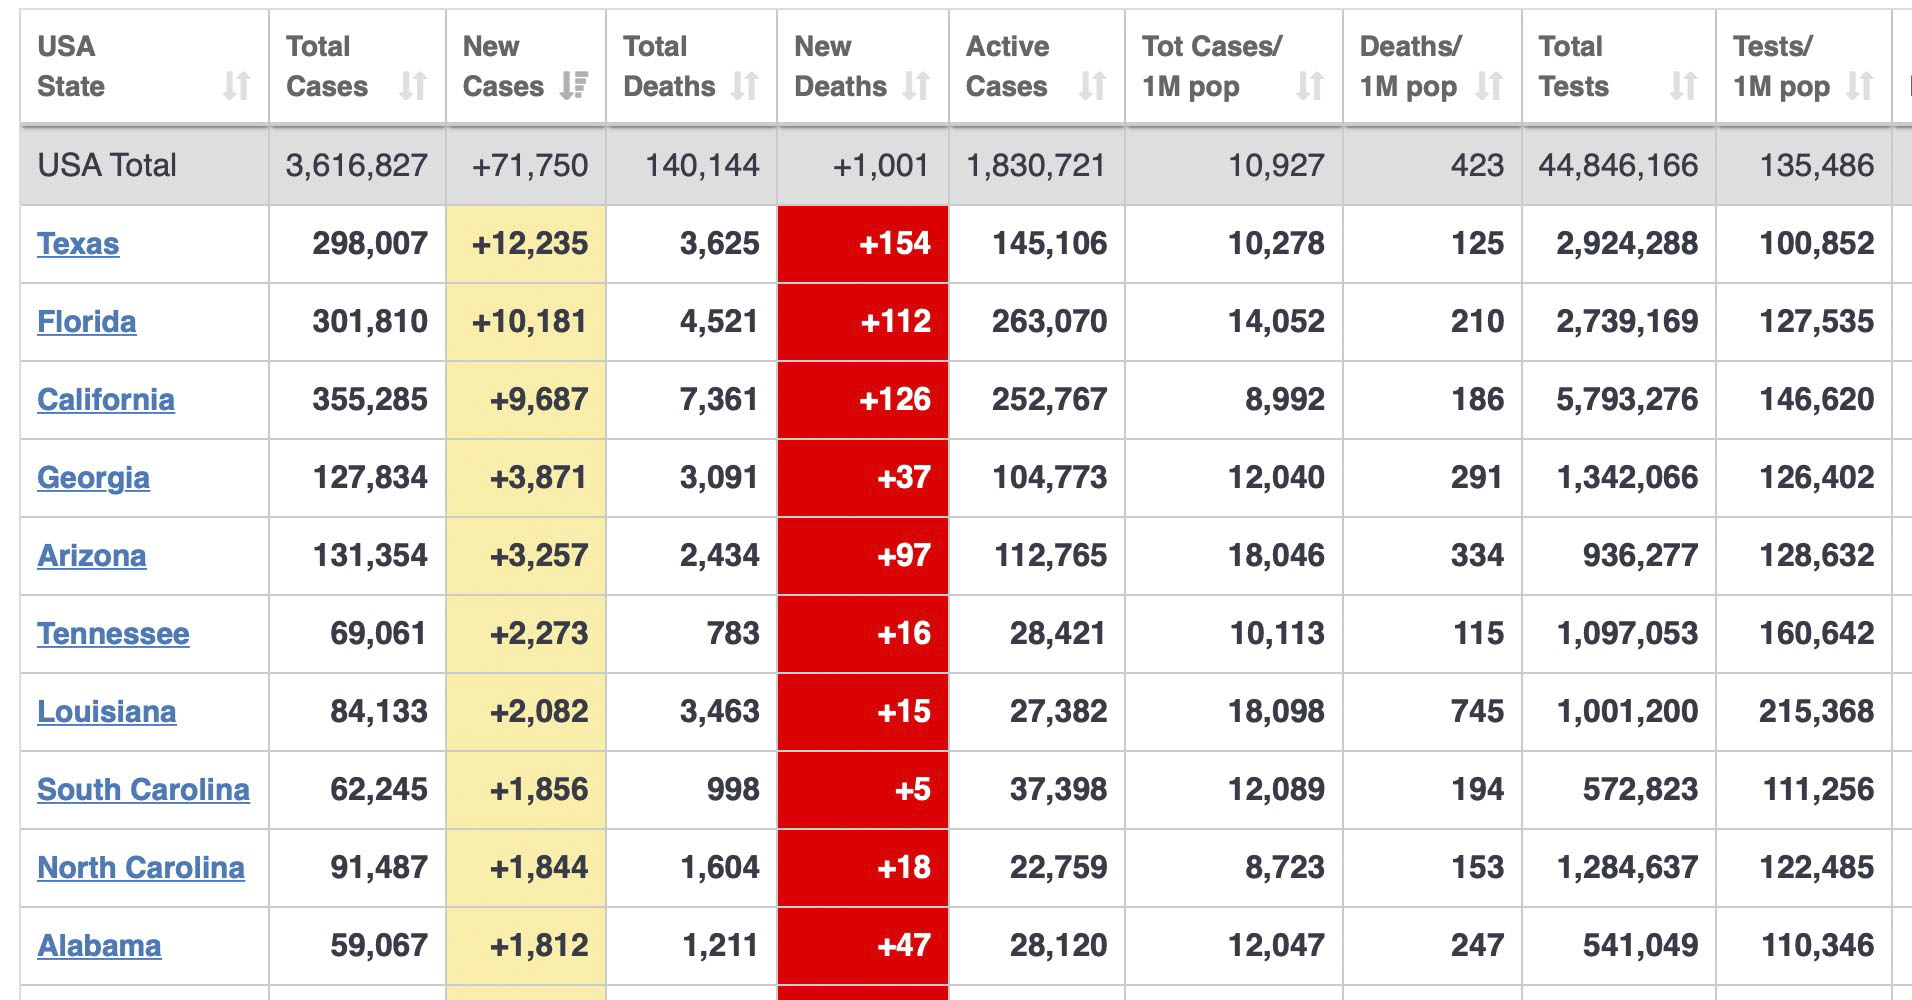 Top 10 states with new cases of COVID-19